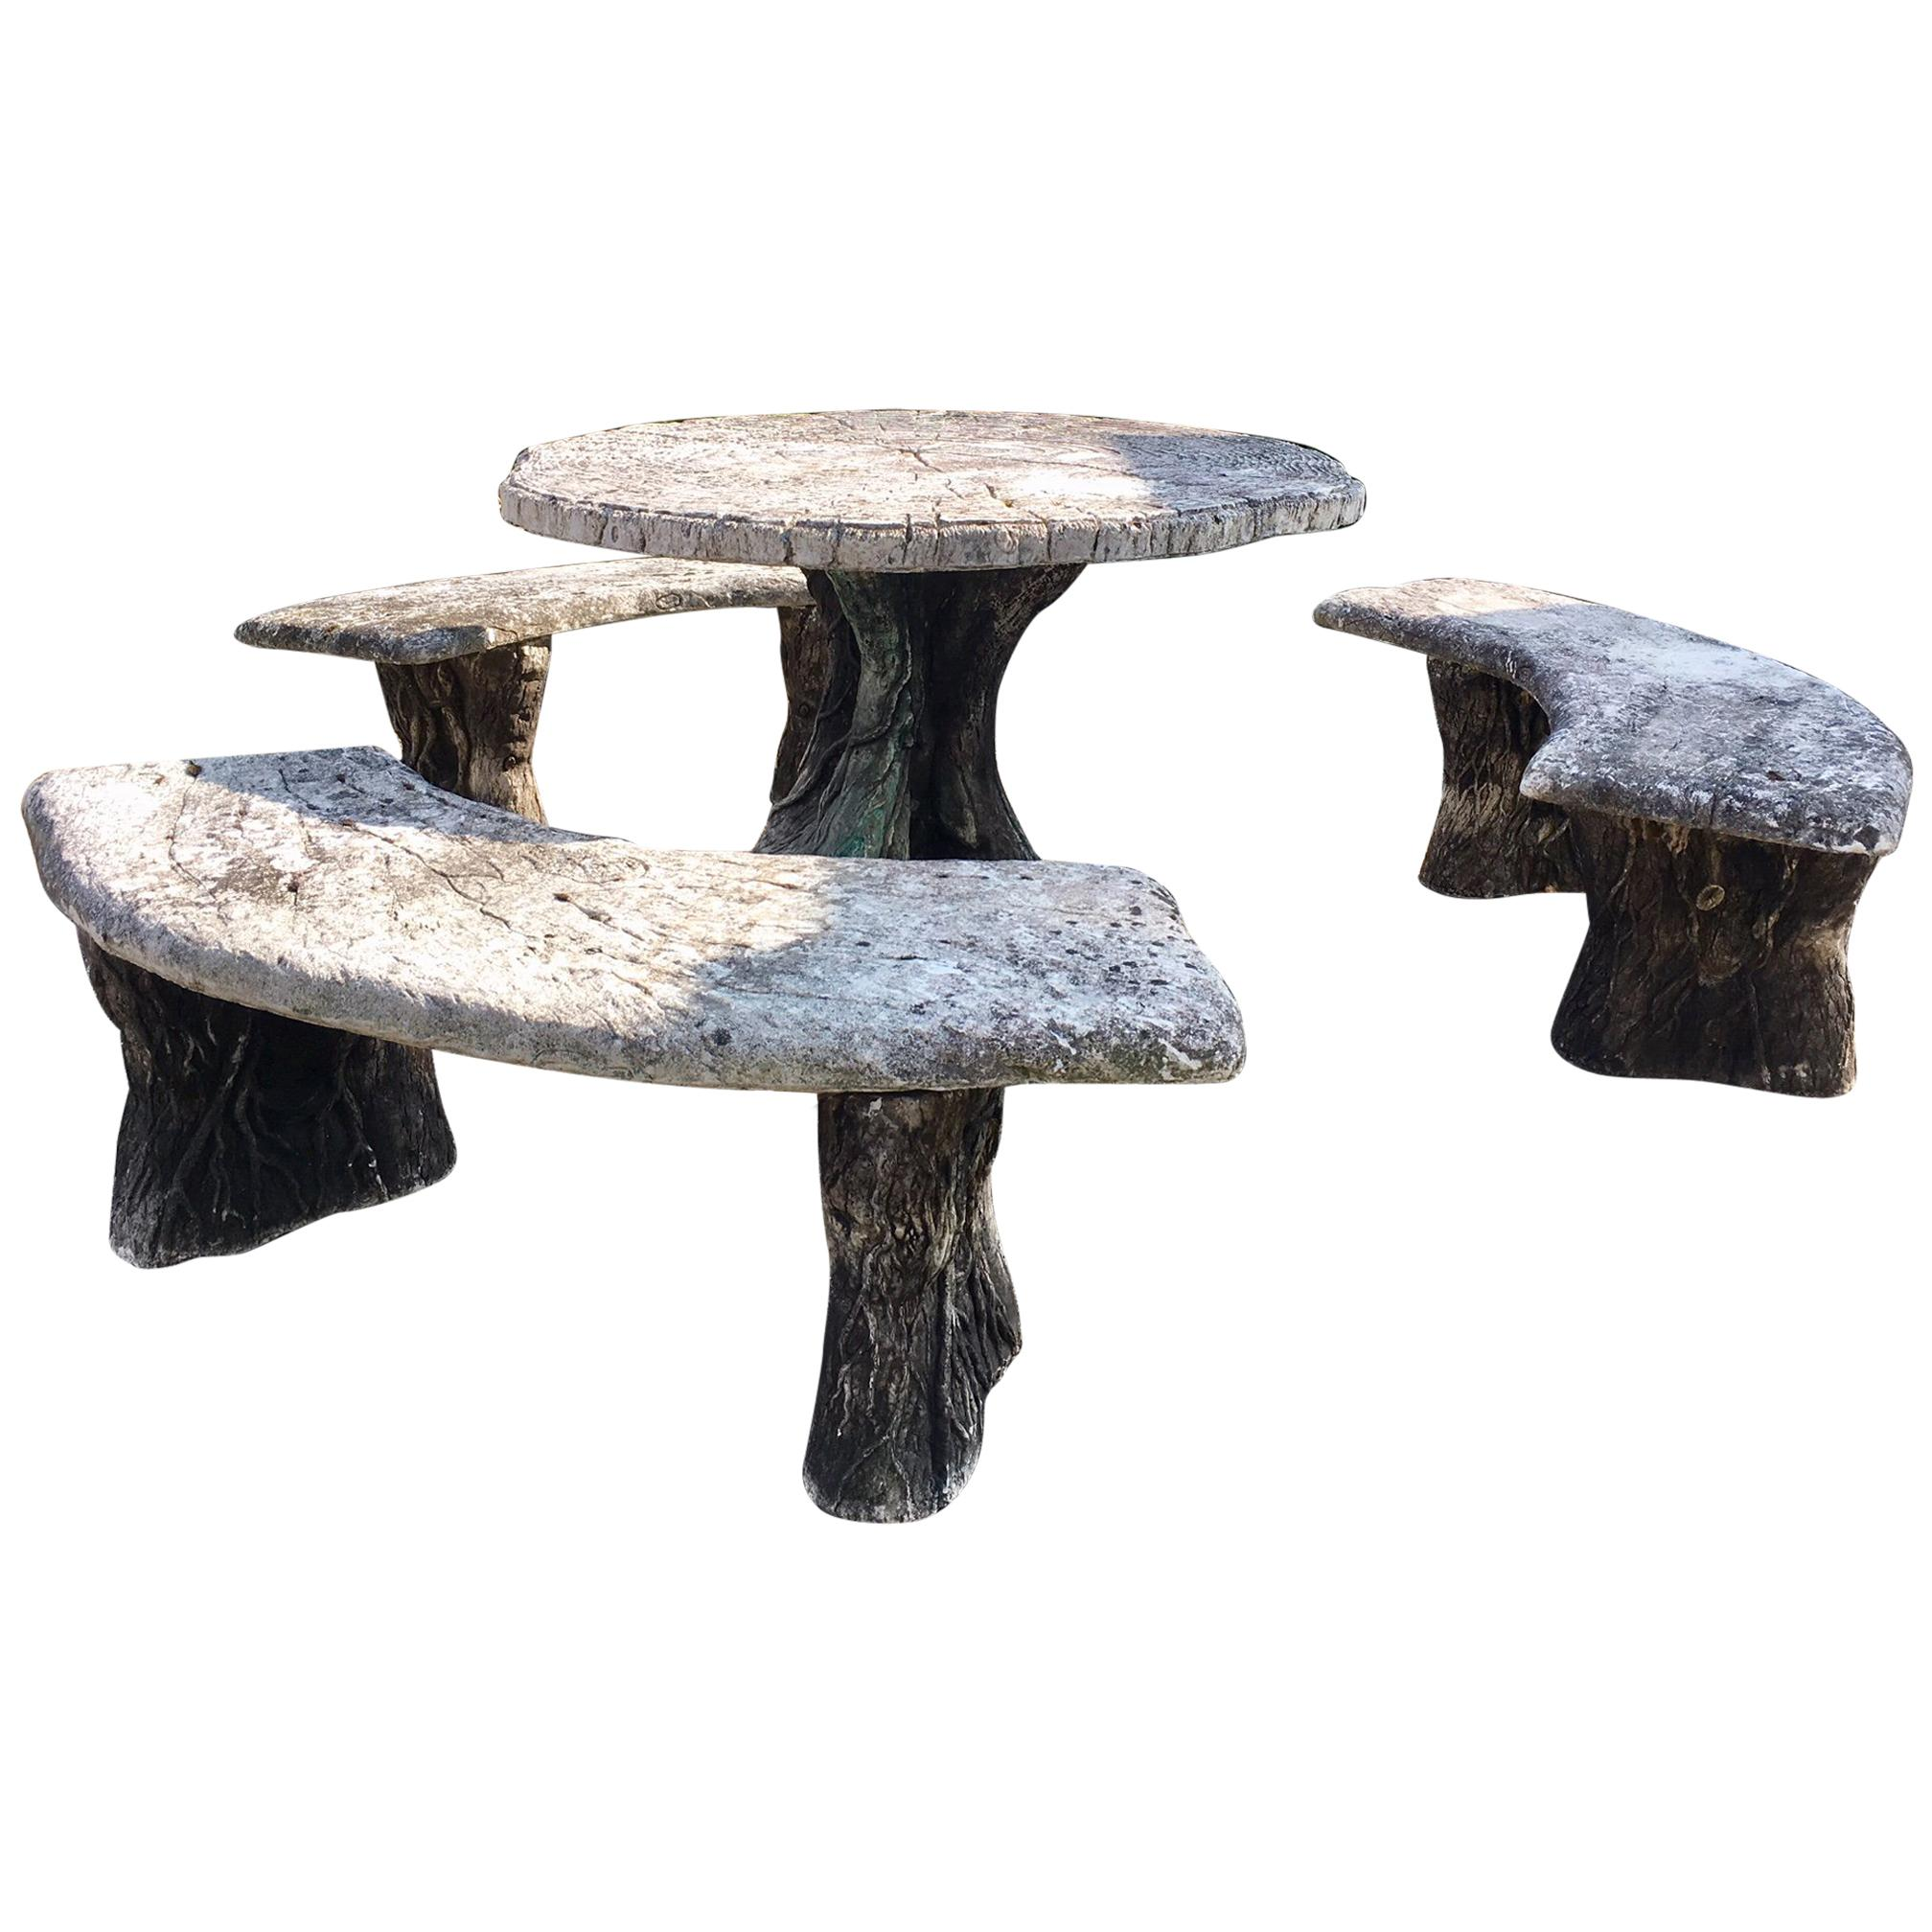 Faux Bois Fake Wood Garden Set Consisting Of A Table And Three Benches At 1stdibs